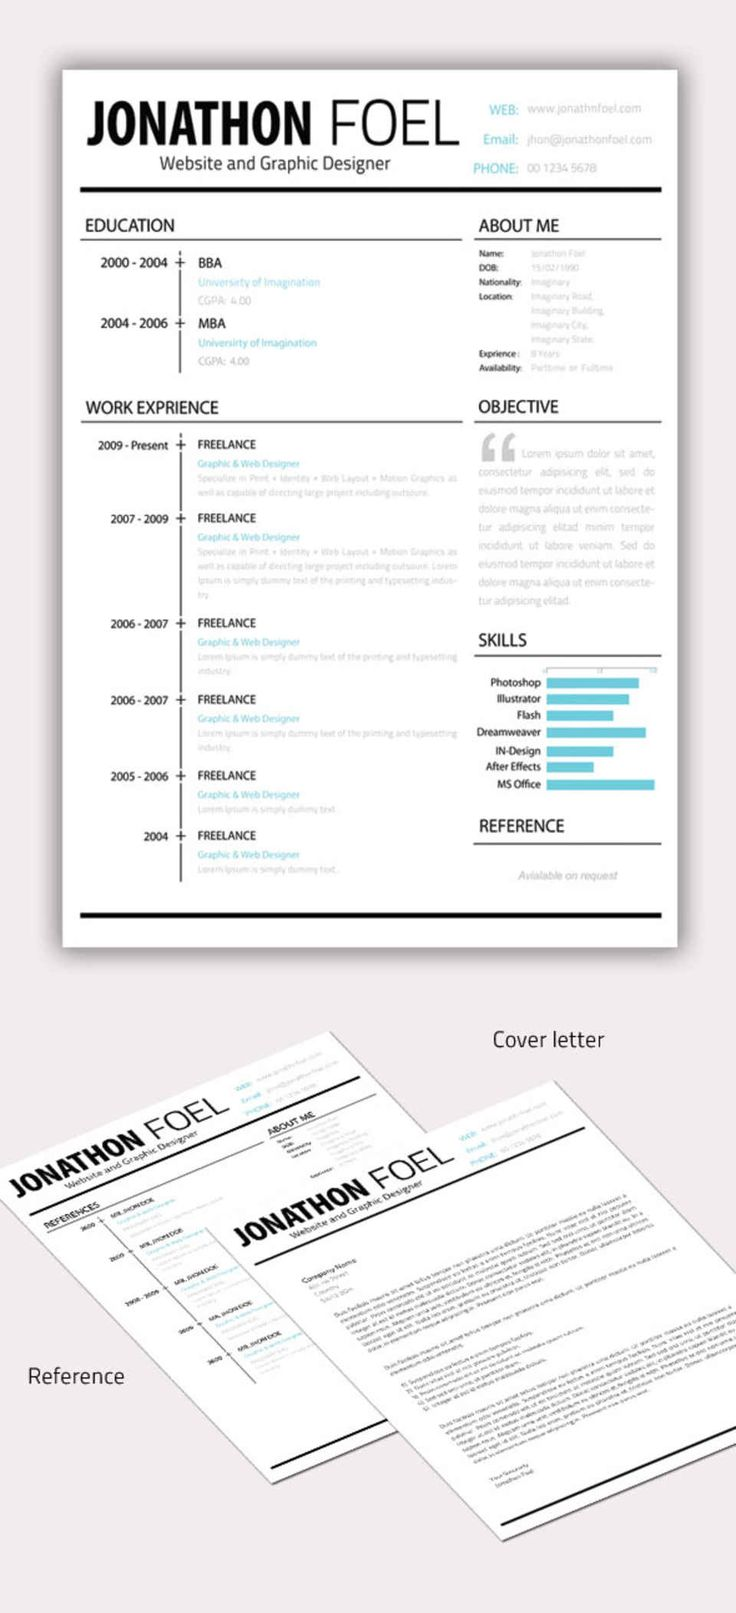 25 best free downloadable resume templates by industry images on pinterest